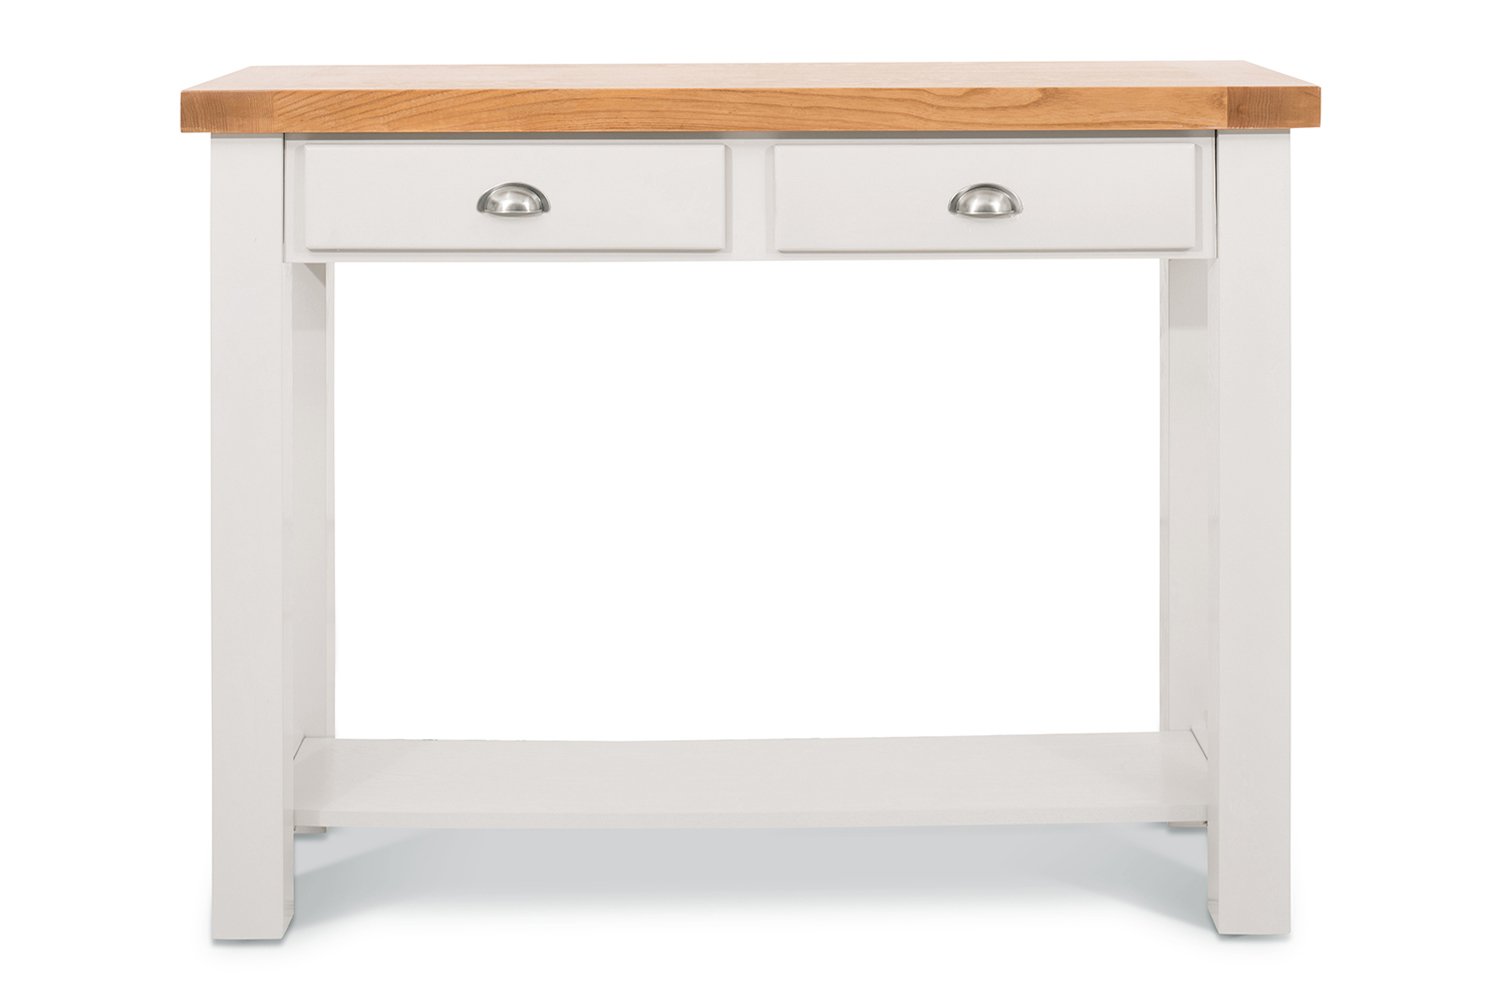 Classic Table Shapes Harvest Console Table Ireland